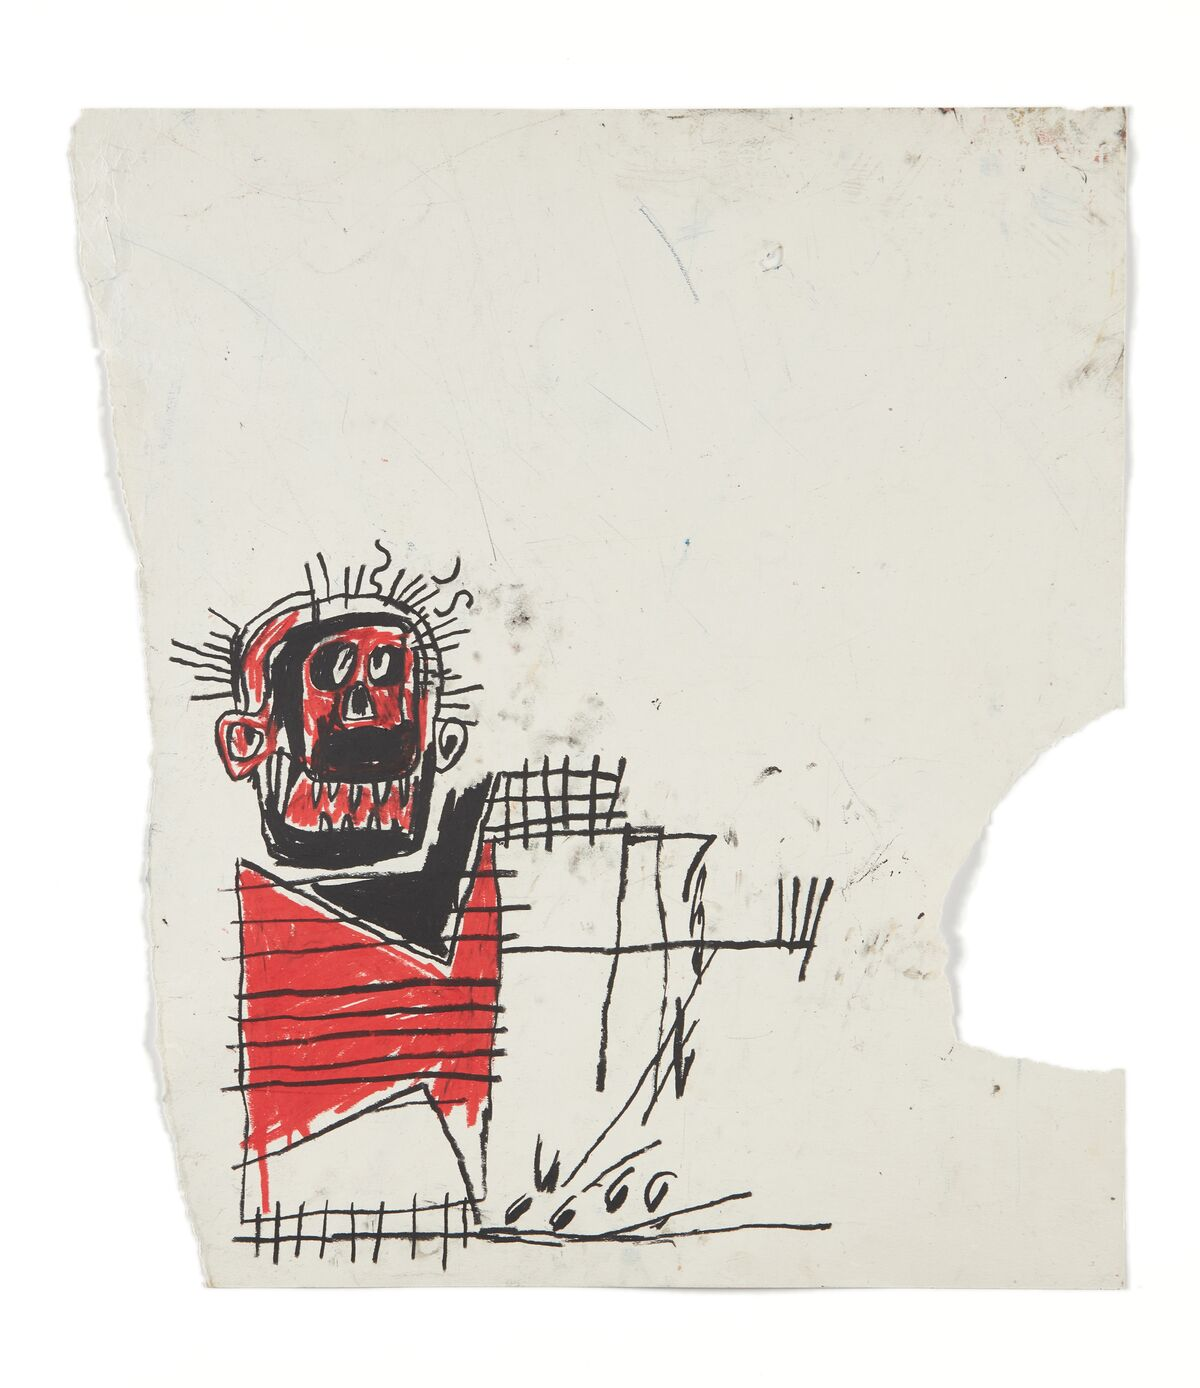 Jean-Michel Basquiat, Untitled (Red/black Figure), 1982. Courtesy of Phillips.